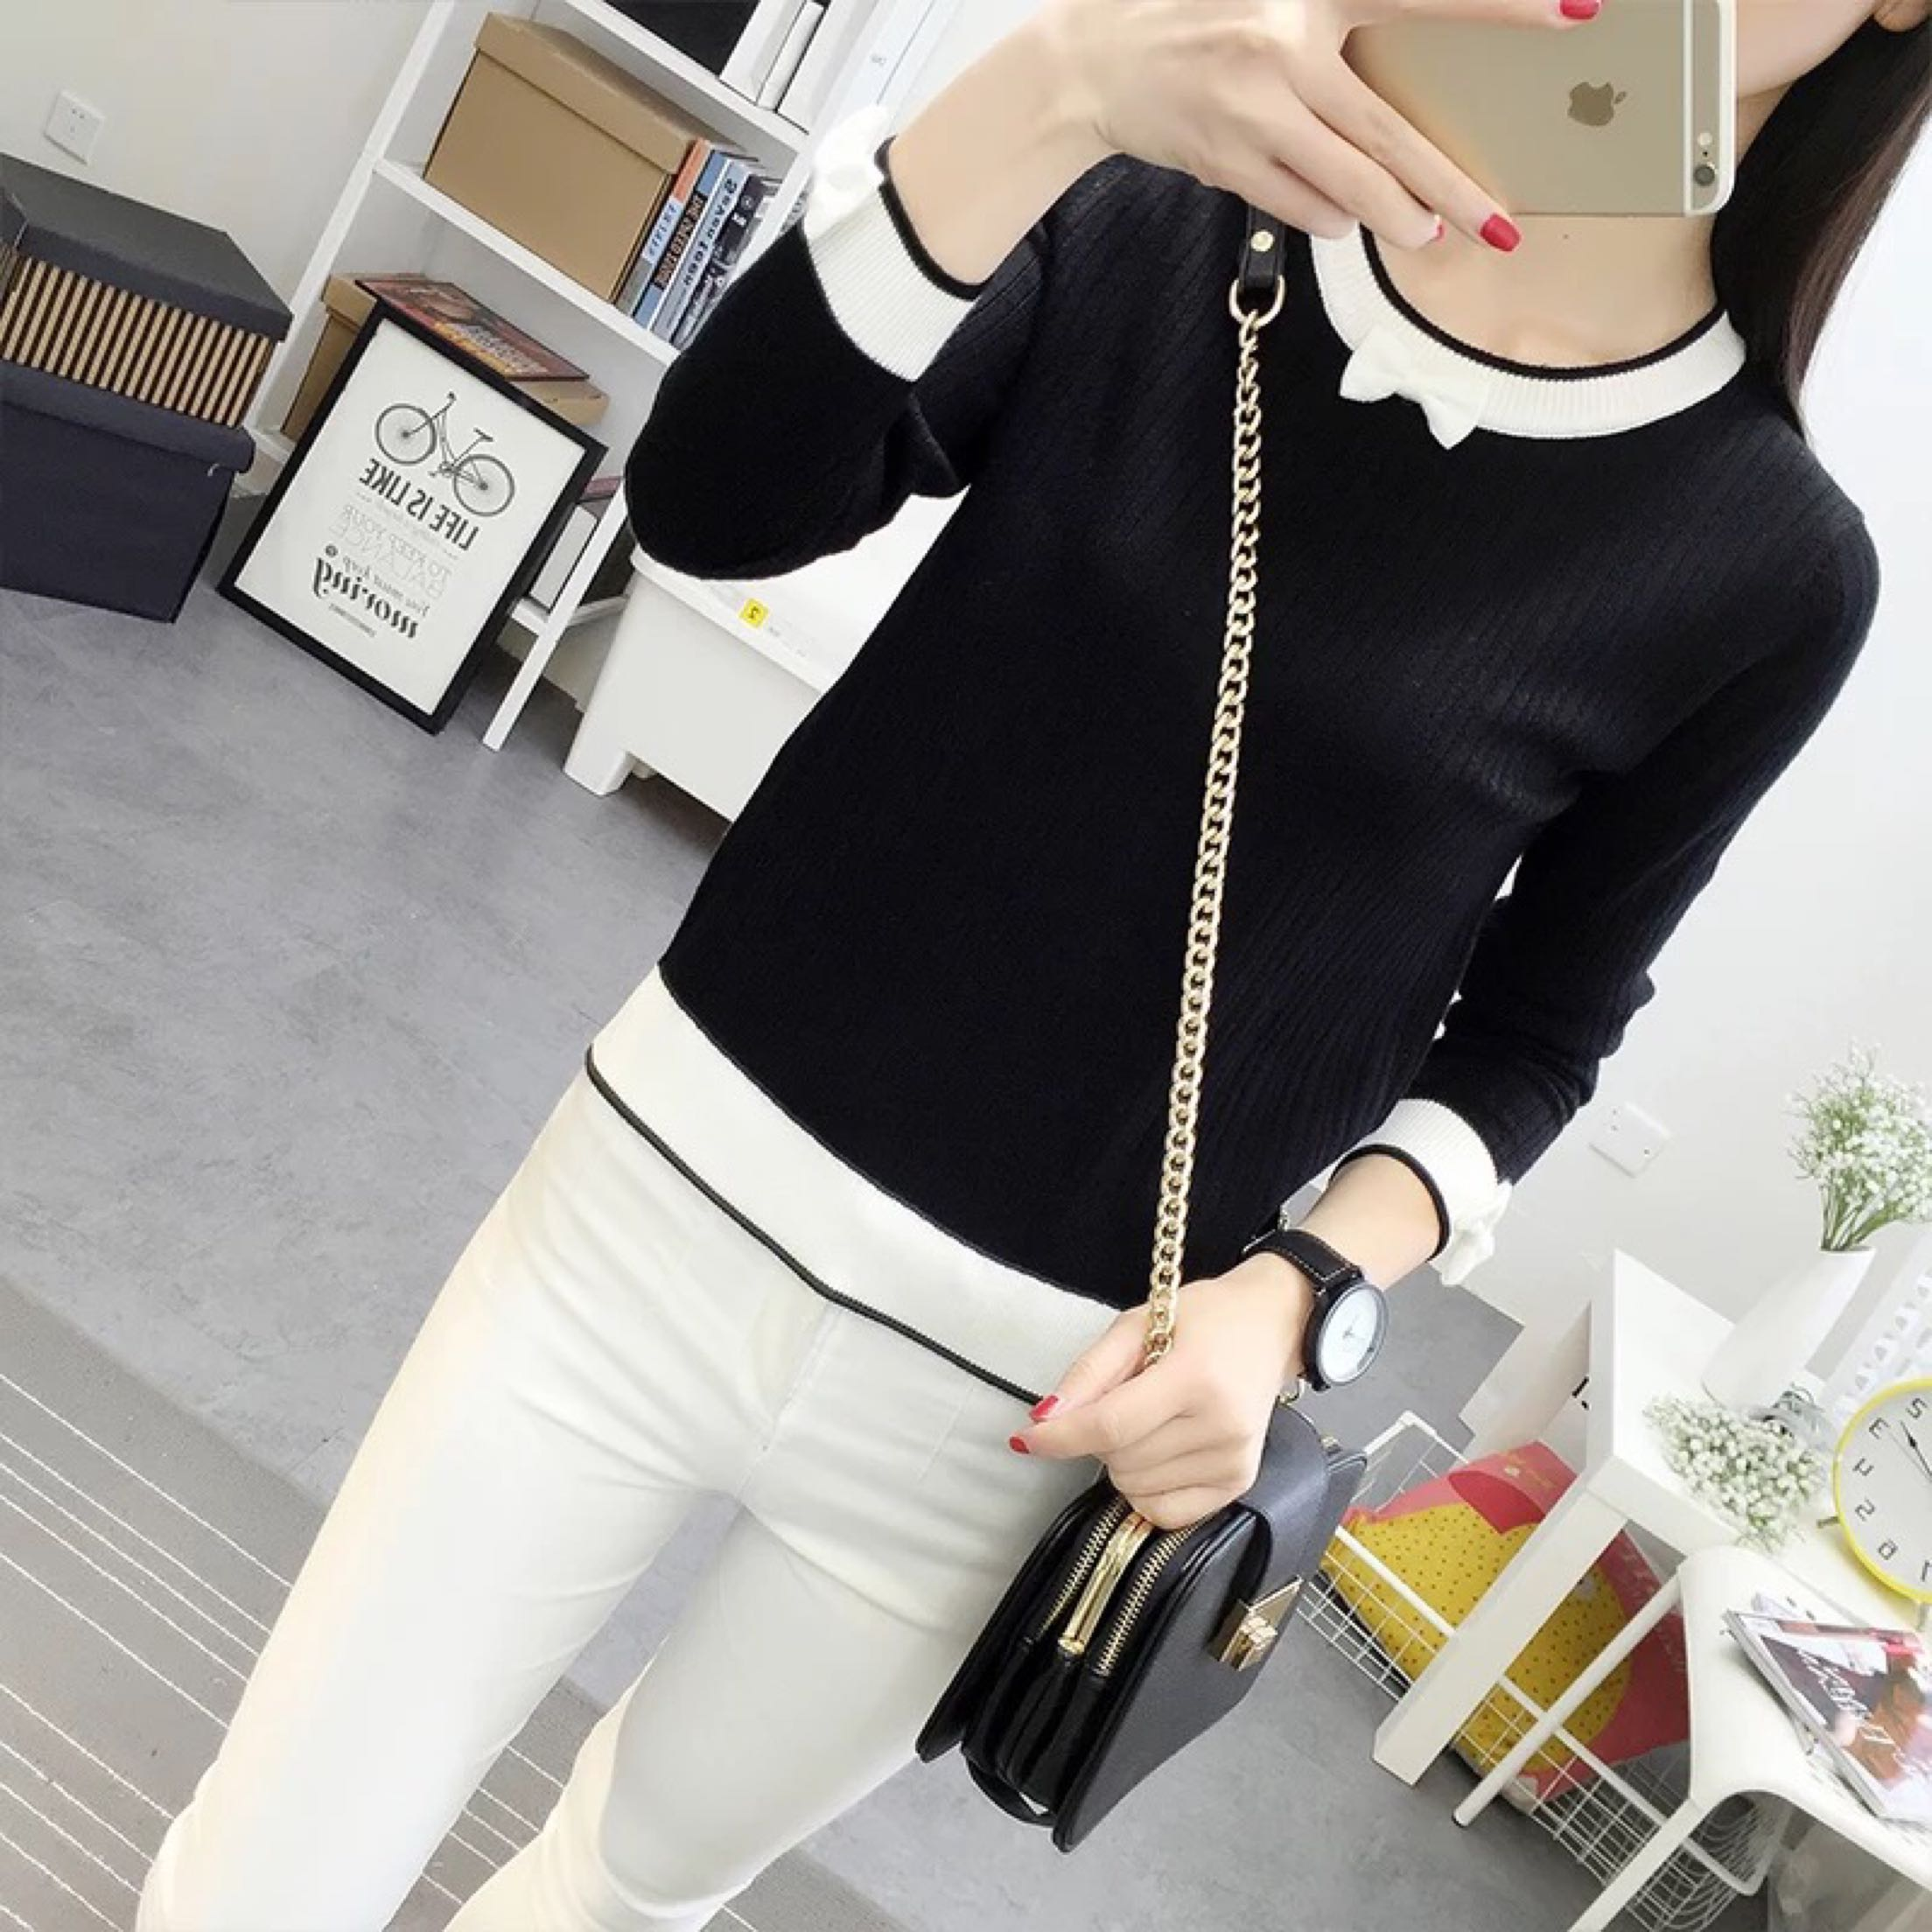 Black White Spring Autumn Women Cotton Knitted Sweater Pullovers Long Sleeve Bow Korean Fashion Basic Female Pullovers Tops Grey